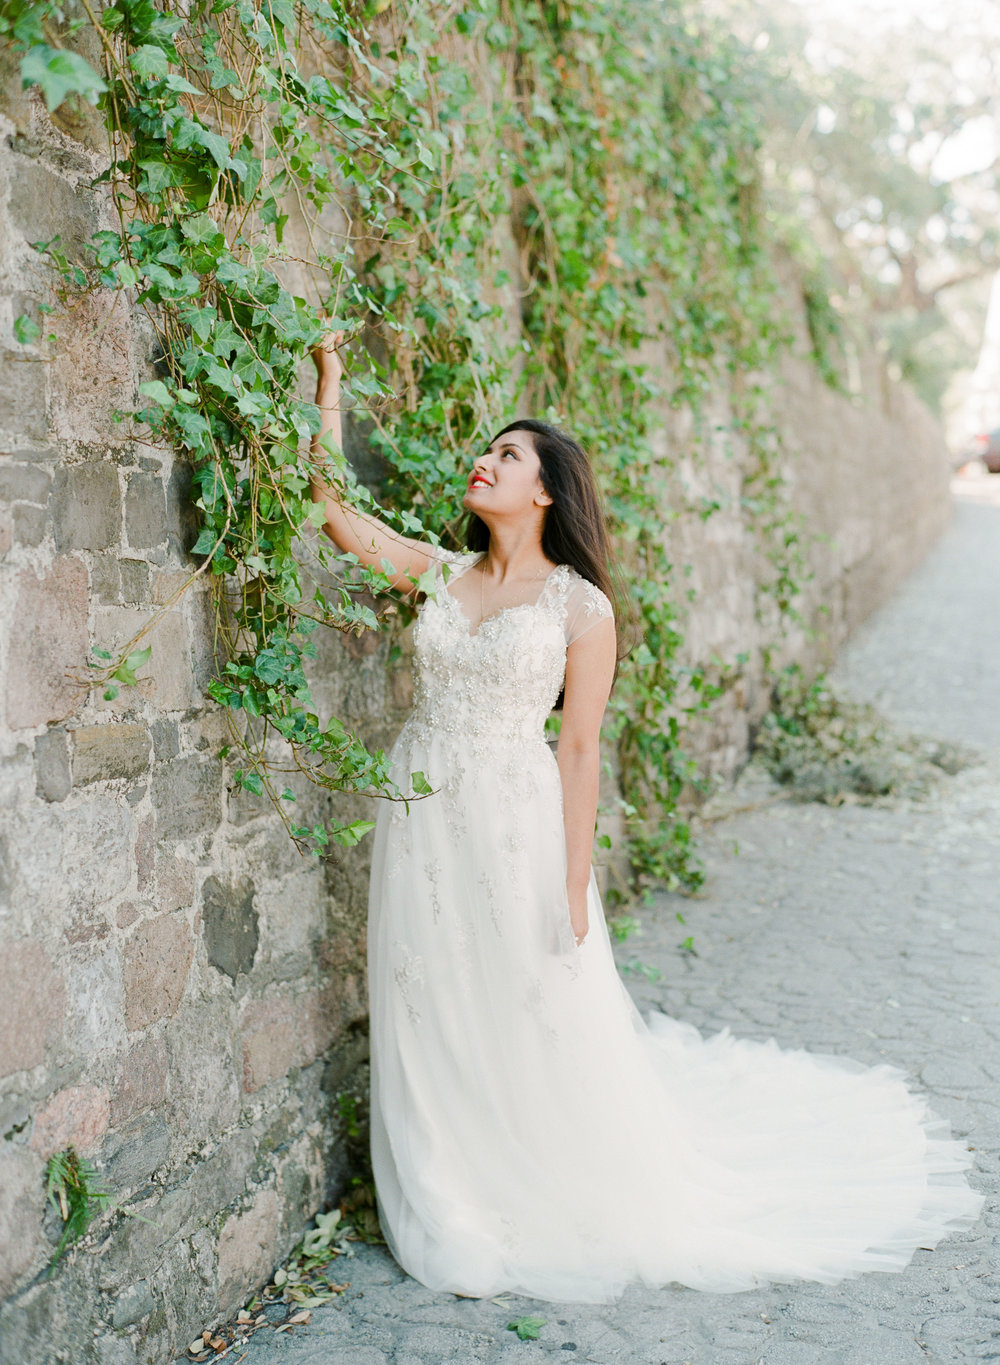 the-happy-bloom-photography-savannah-wedding-photographer-savannah-bridal-boutique-savannah-wedding-dresses-kylie-by-maggie-sottero-indian-bride-southern-bride-savannah-florist-hilton-head-bride-historic-savannah-wedding-7.jpg